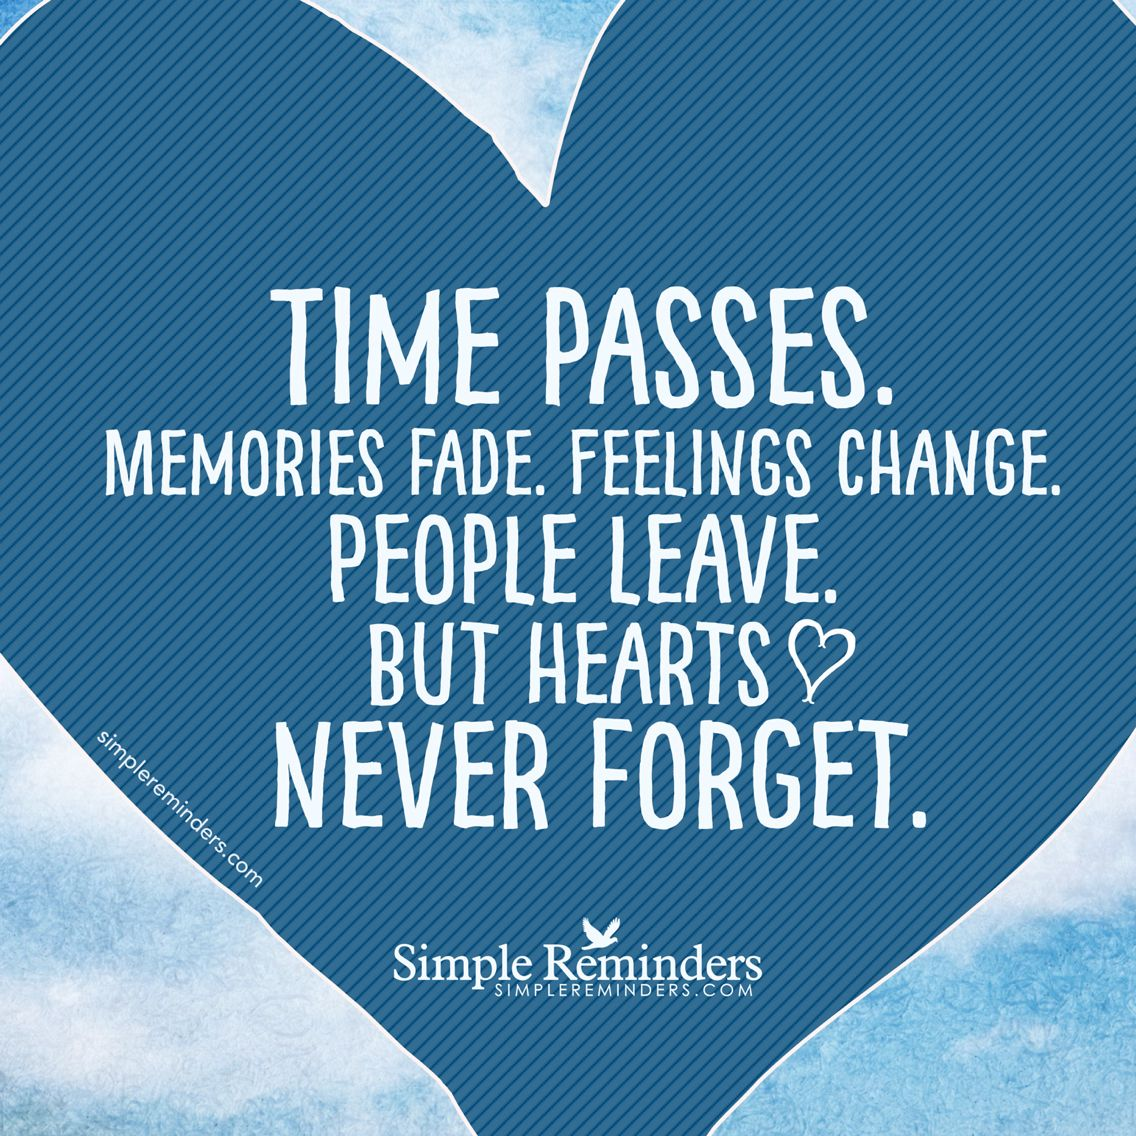 Quotes About Time Passing Entrancing Simple Reminders  Quotes ↠ Simple Reminders  Pinterest  Simple